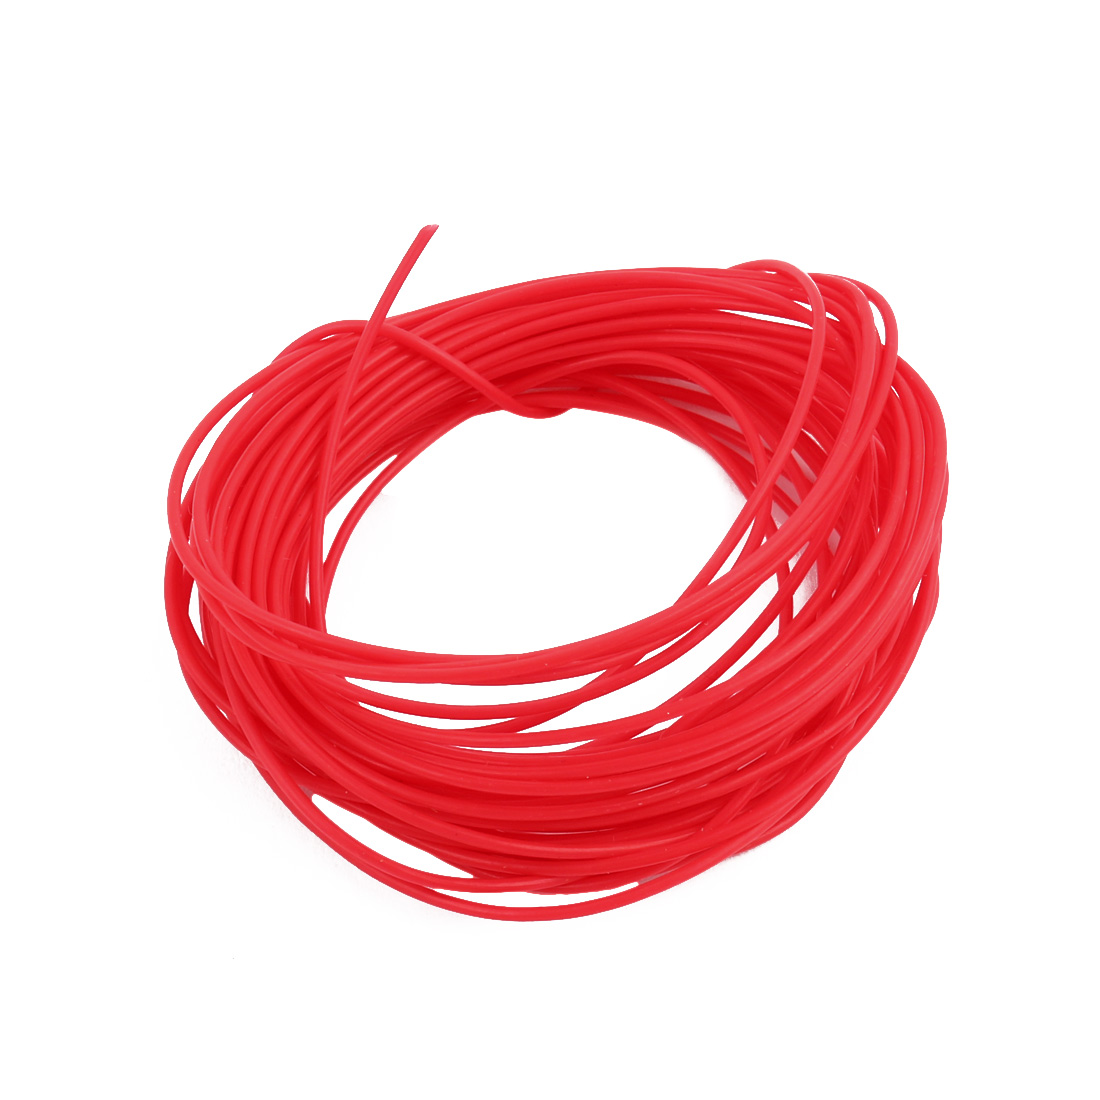 0.81mmx1.11mm PTFE Resistant High Temperature Red Tubing 10 Meters 32.8Ft